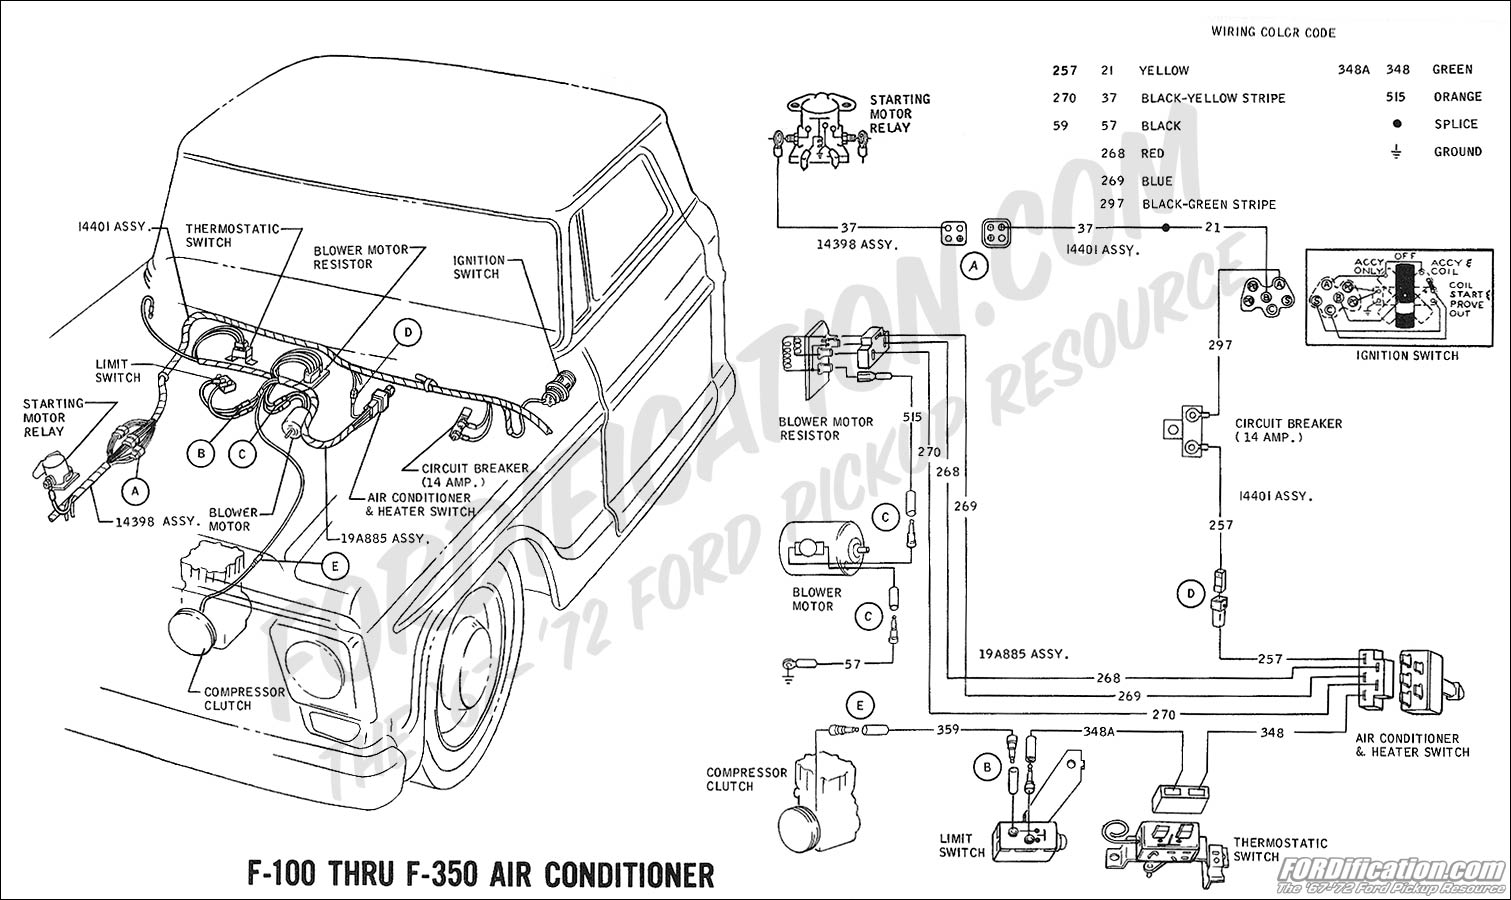 hight resolution of 1969 f 100 thru f 350 air conditioner